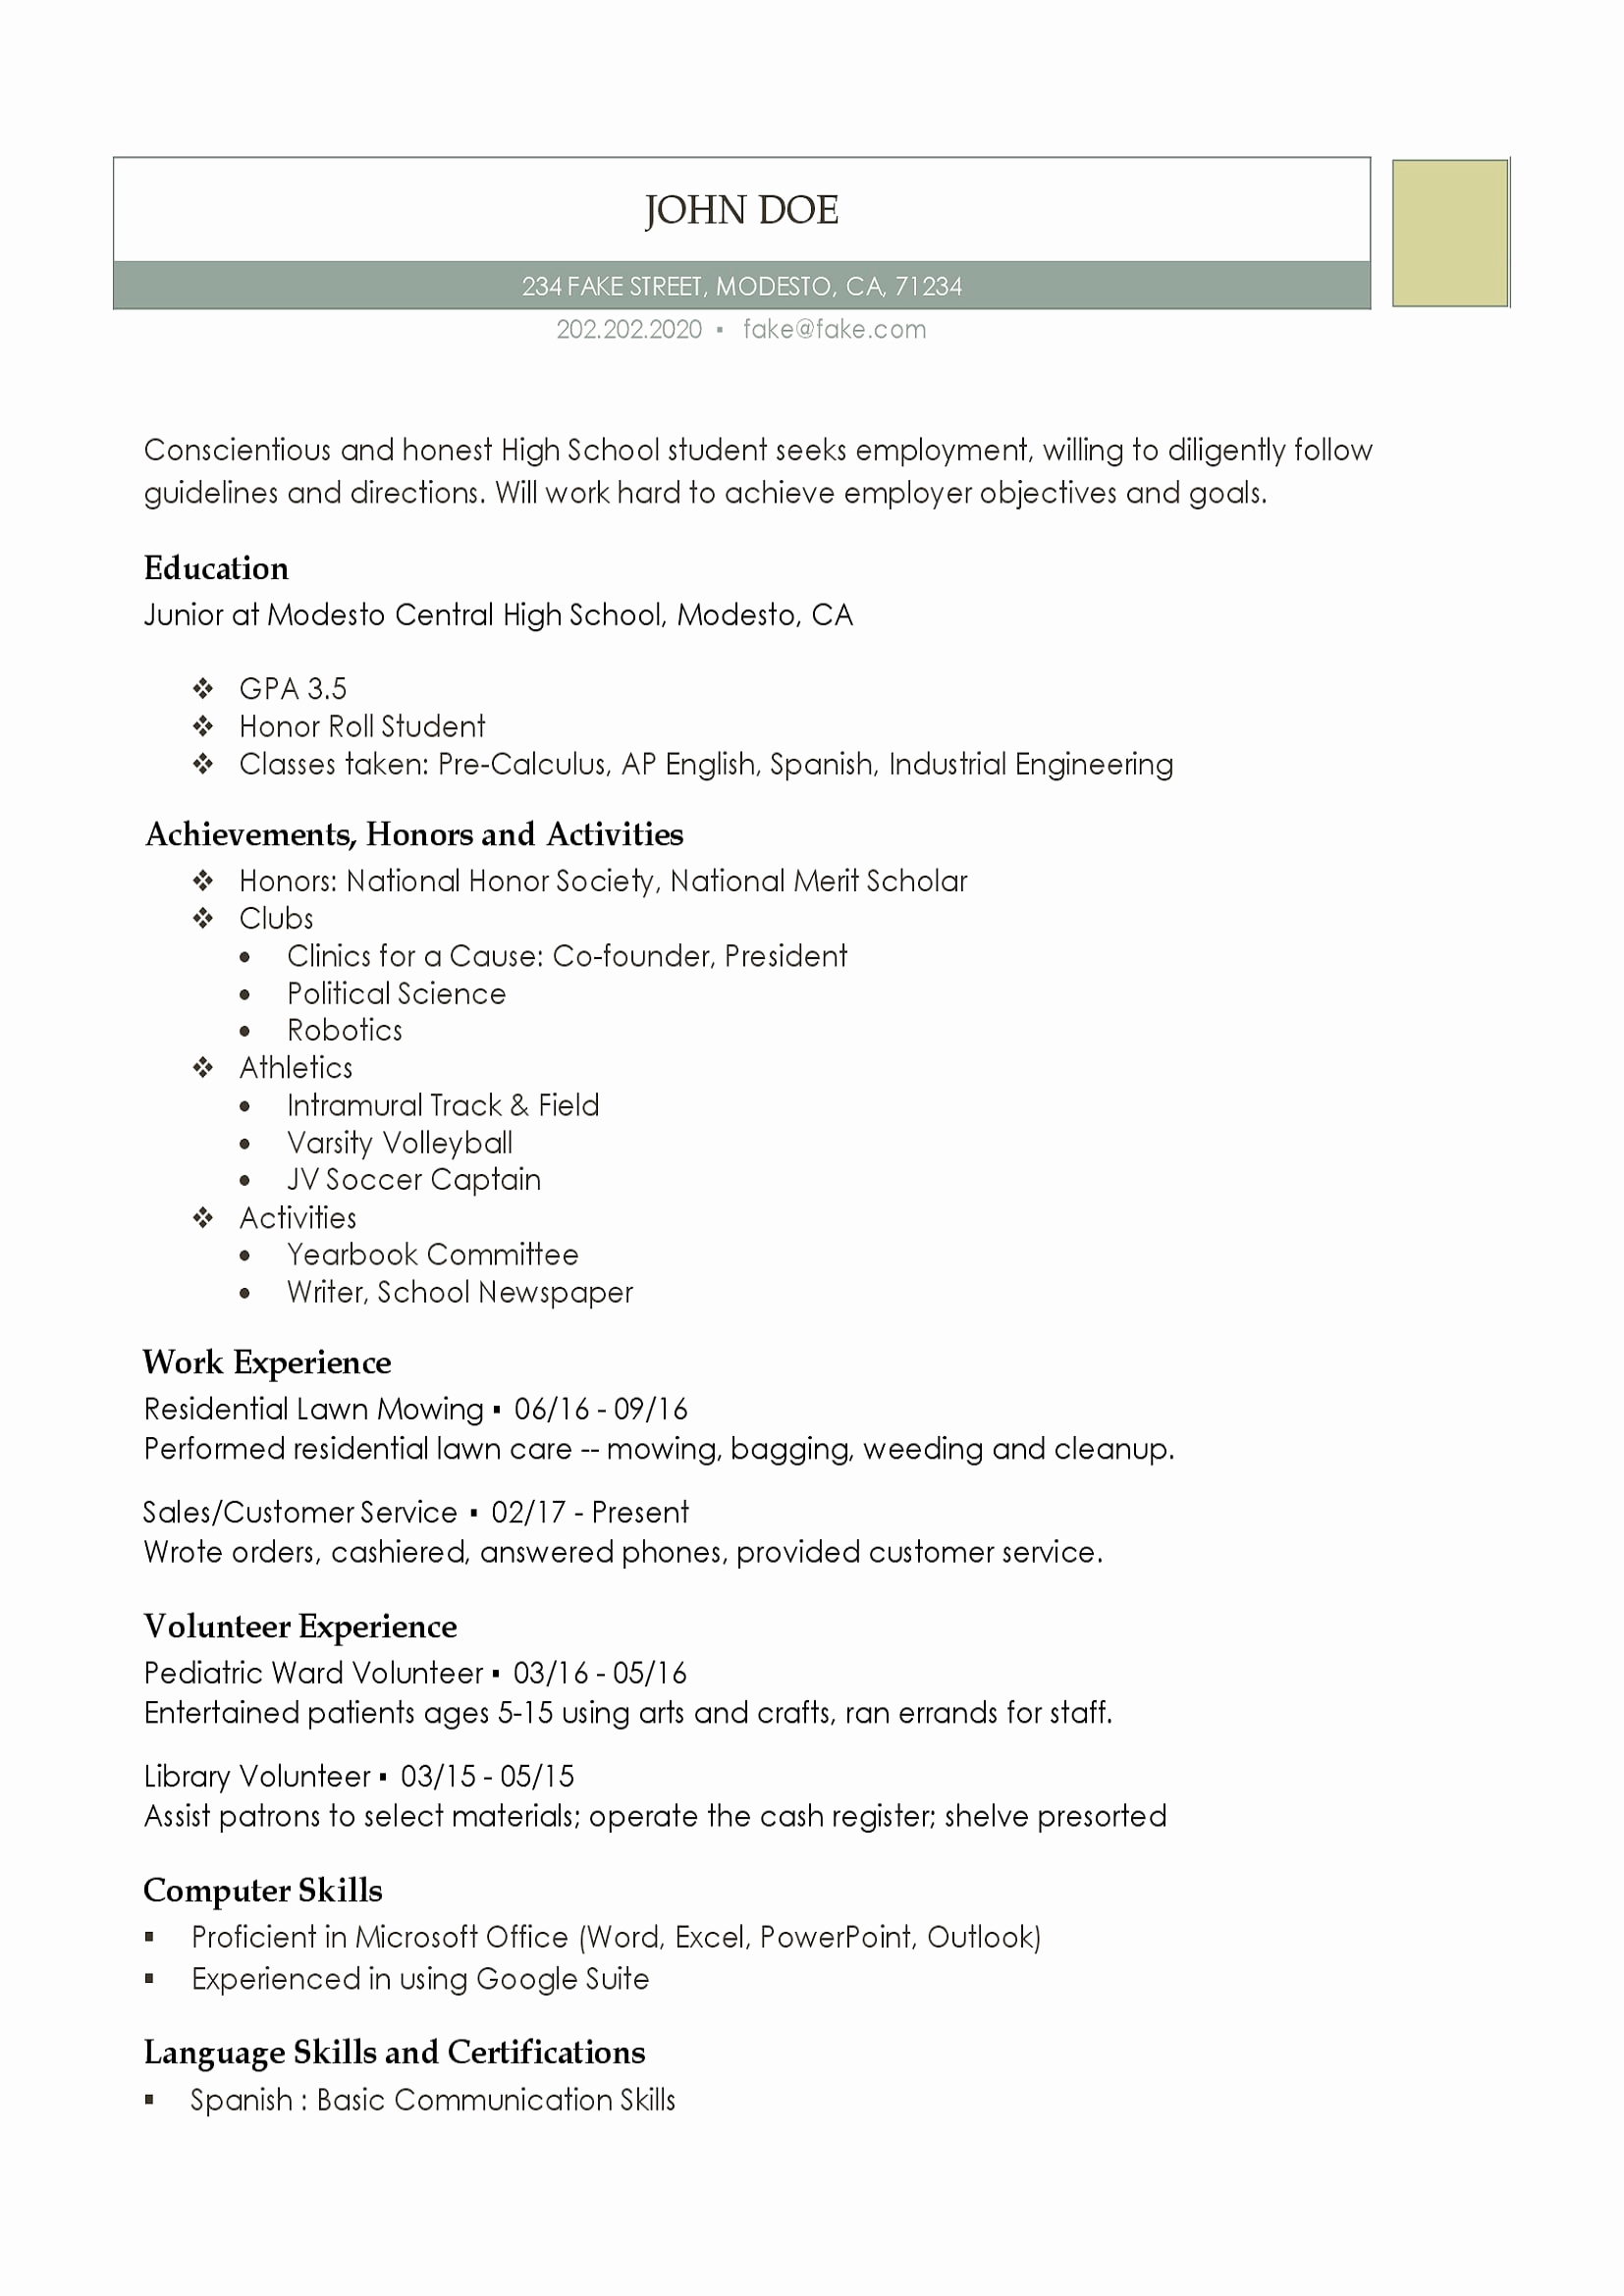 Resume for Highschool Students Beautiful High School Resume Resumes Perfect for High School Students